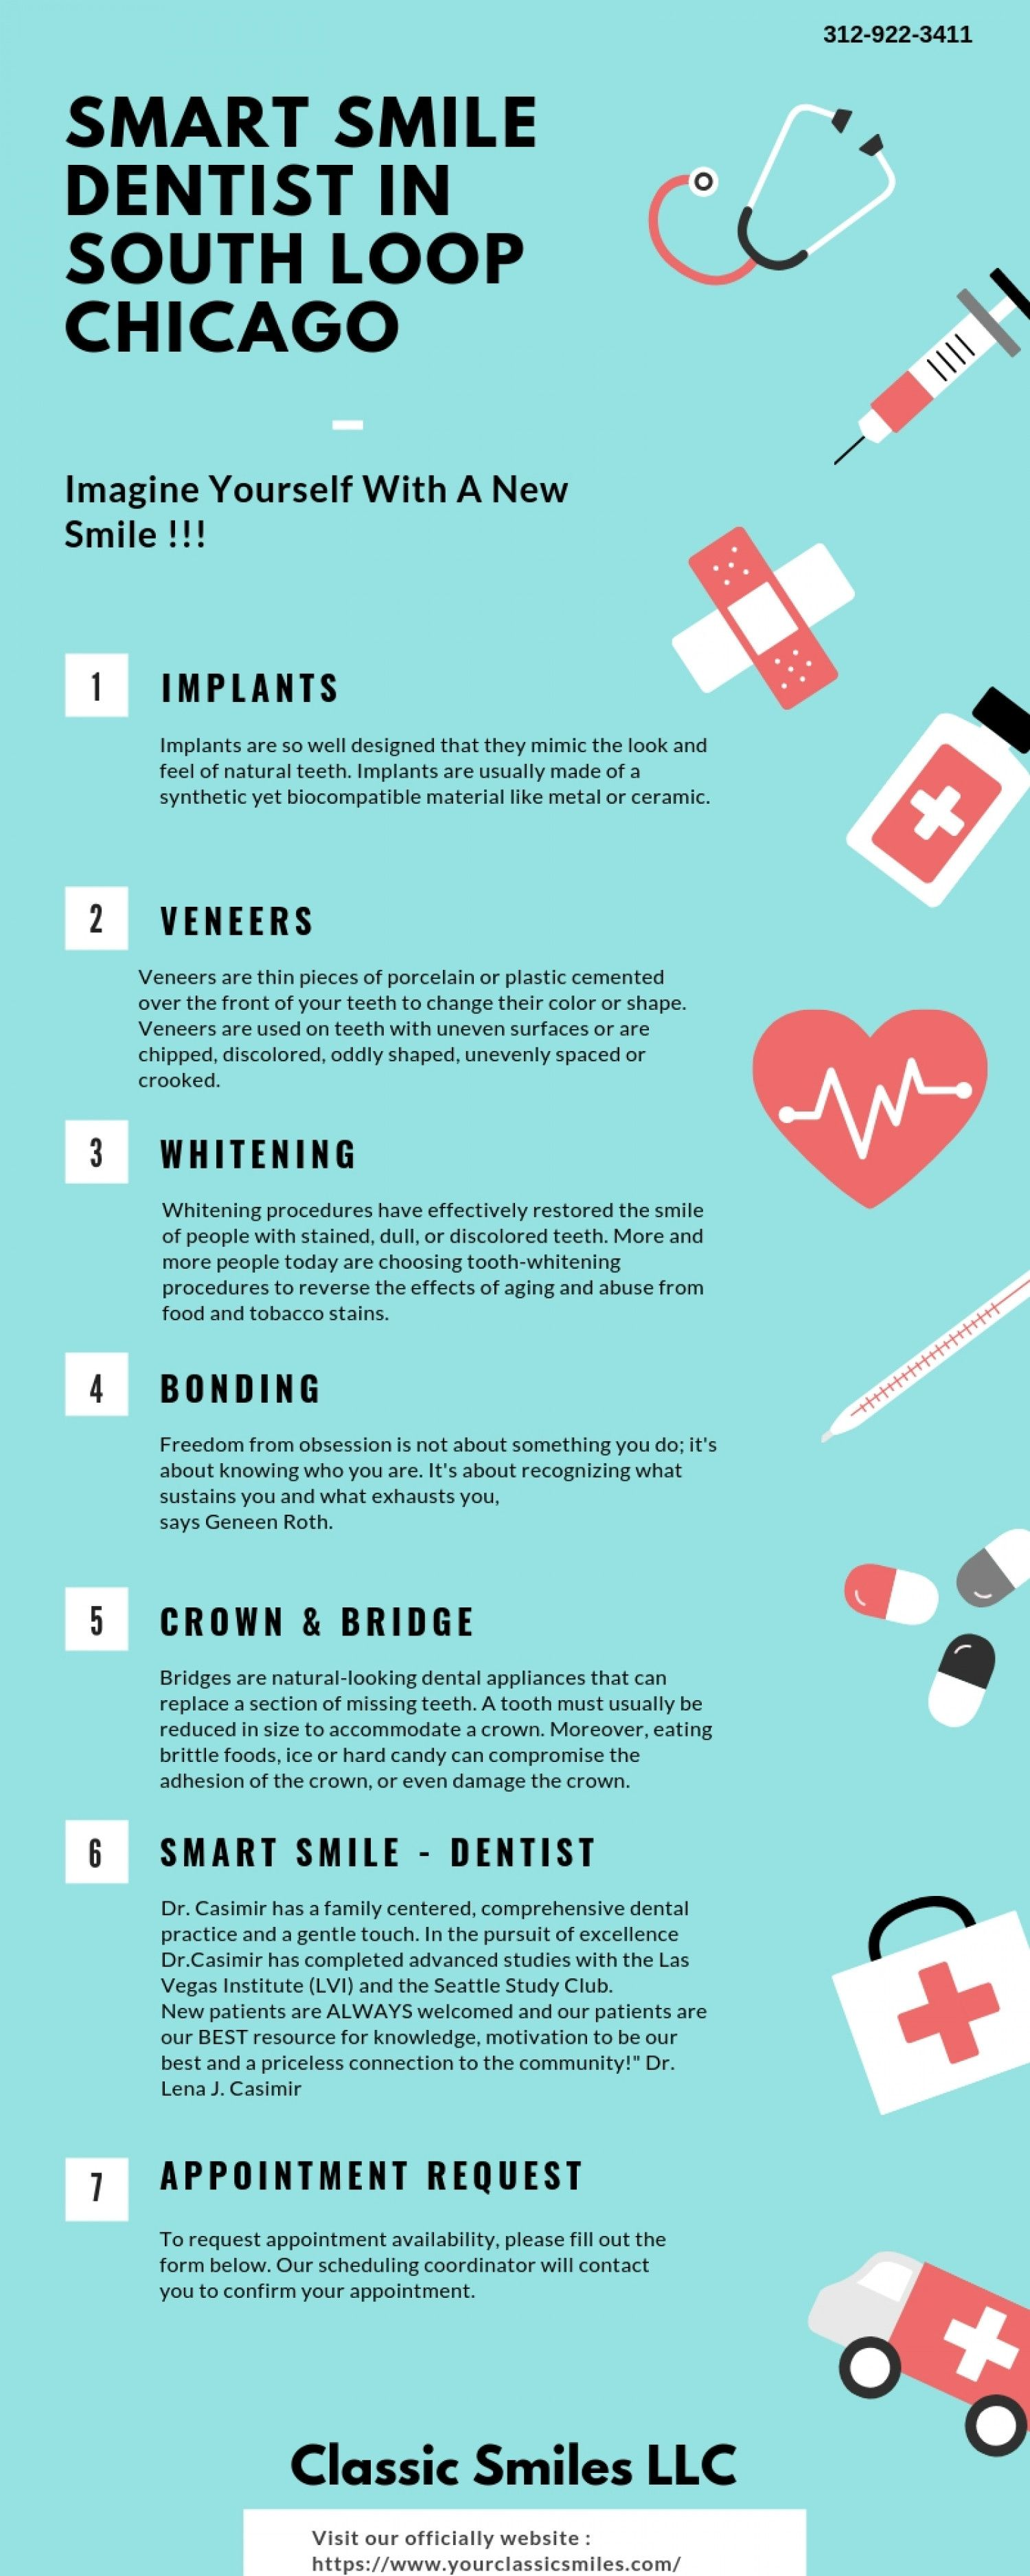 Smart Smile Dentist in South Loop Chicago Infographic